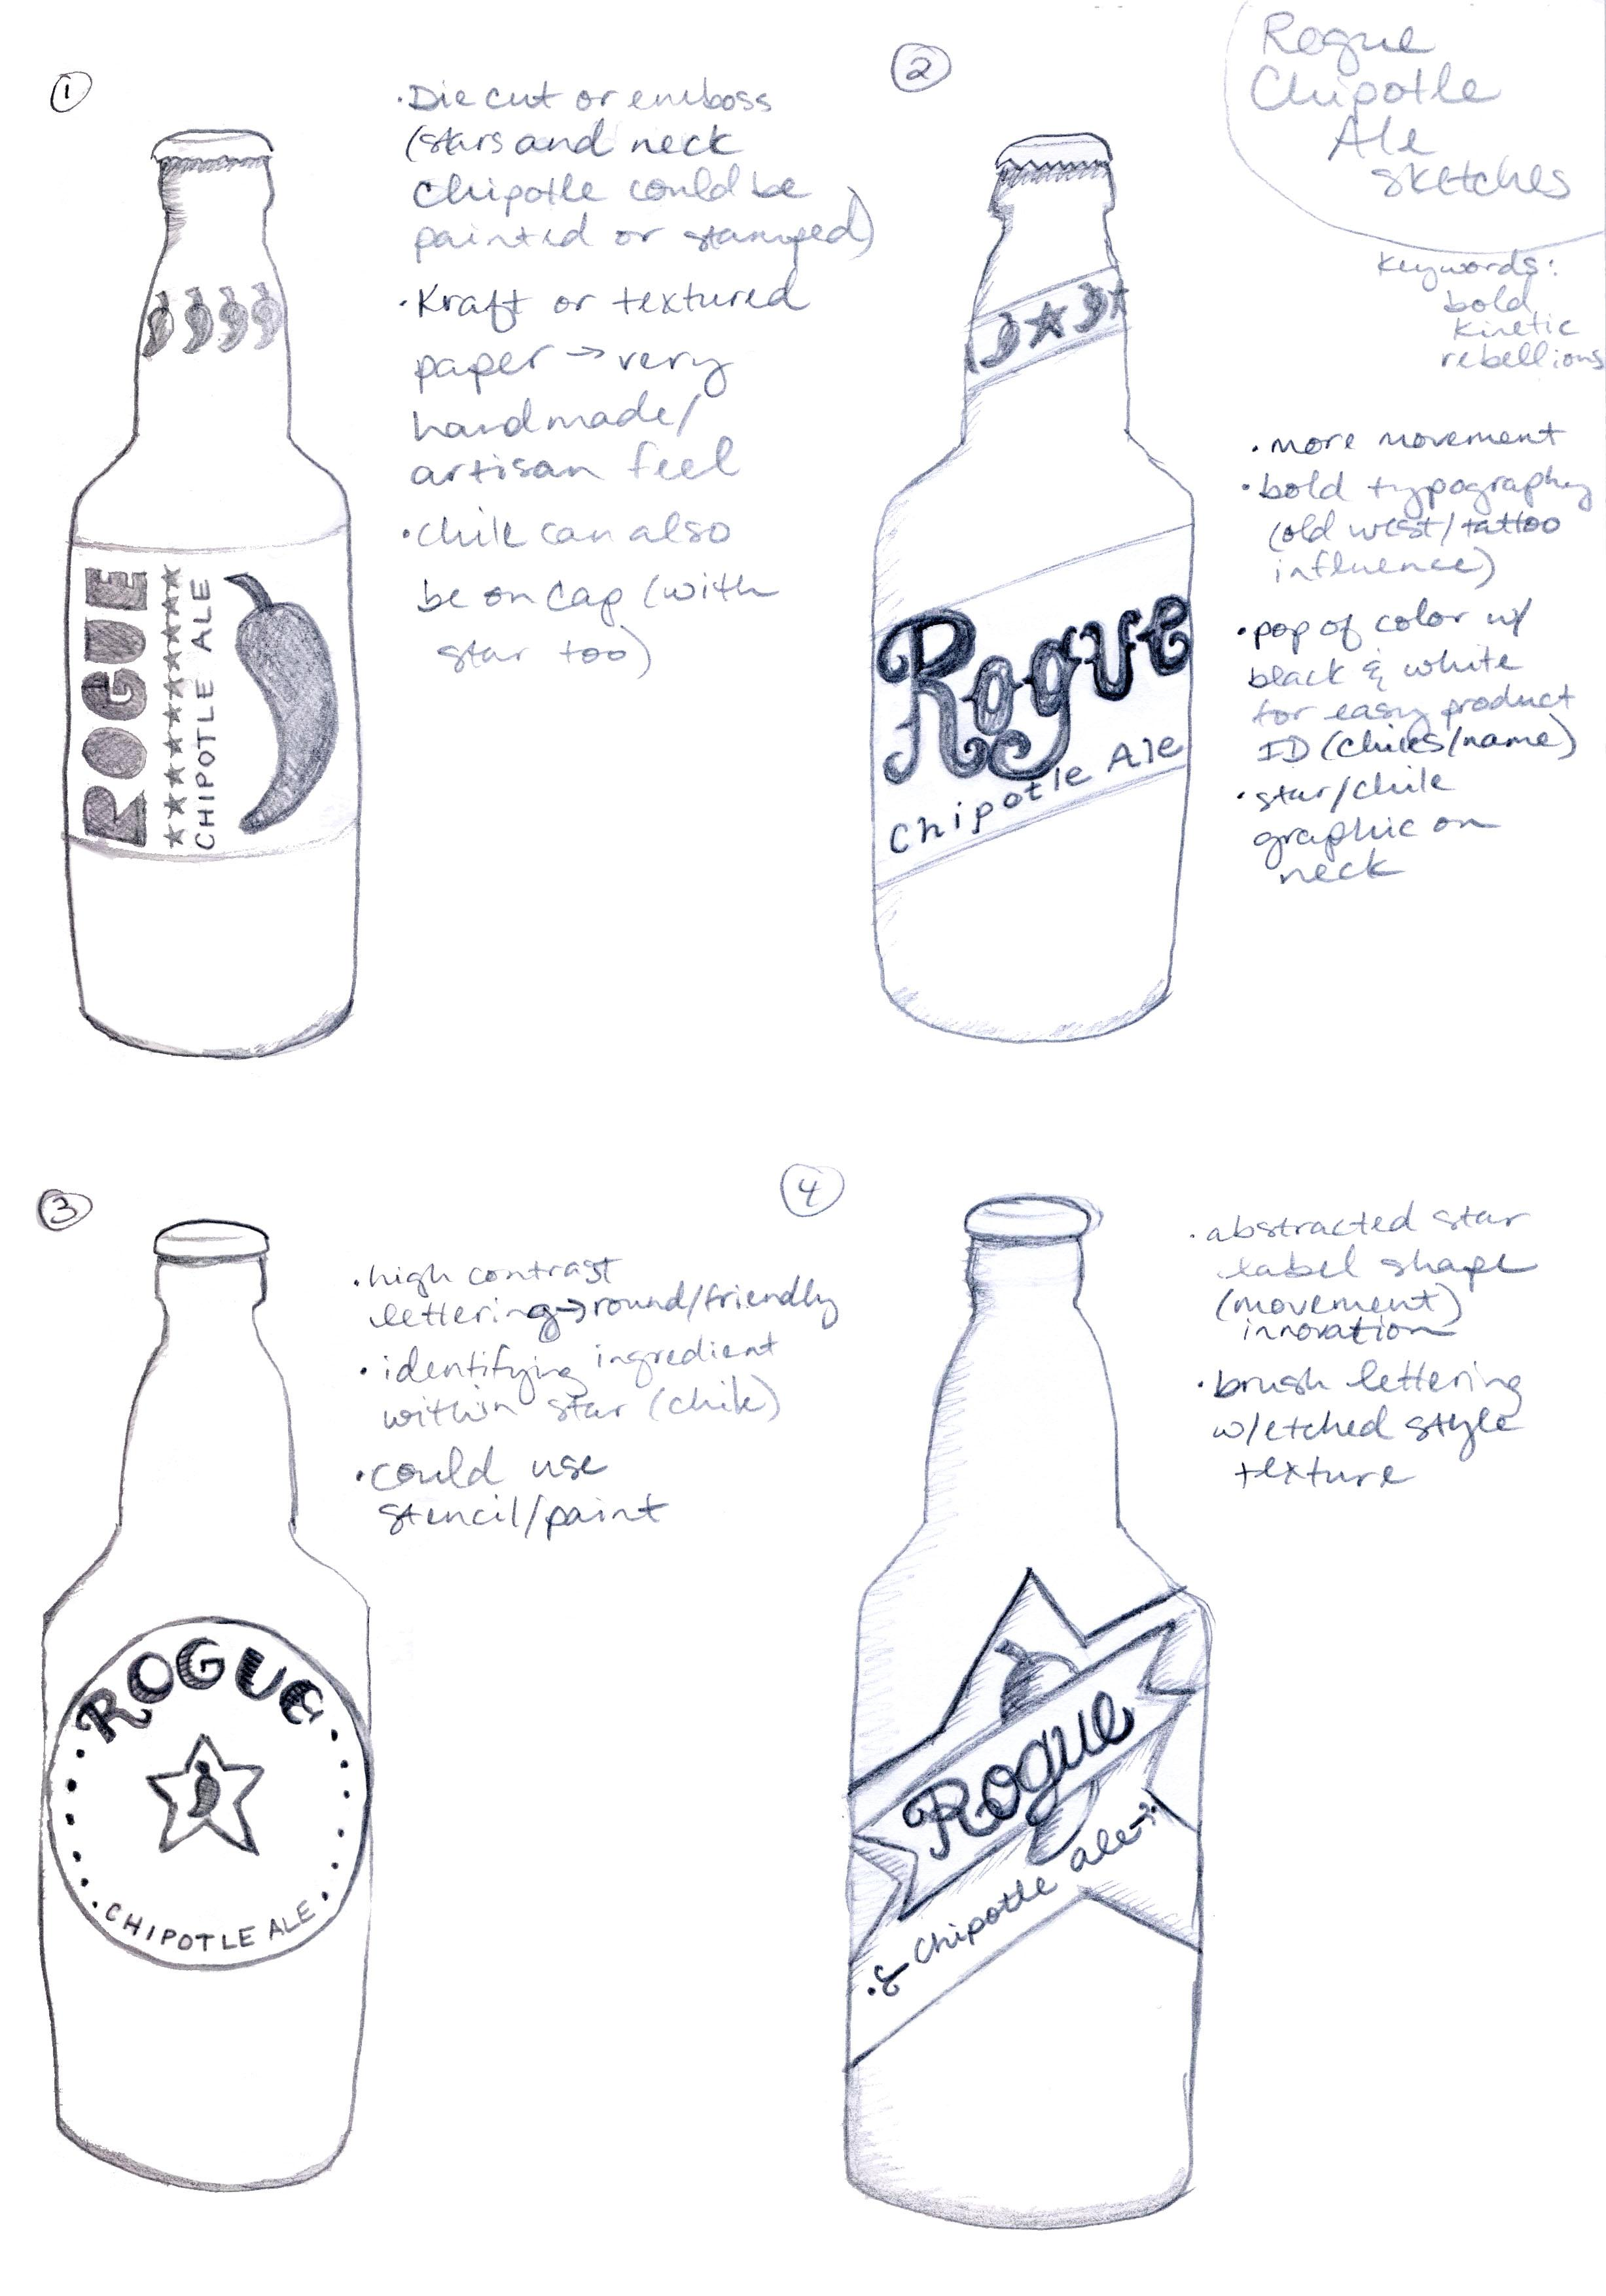 Bottle Label Redesign for Rogue Brand Chipotle Ale - image 6 - student project